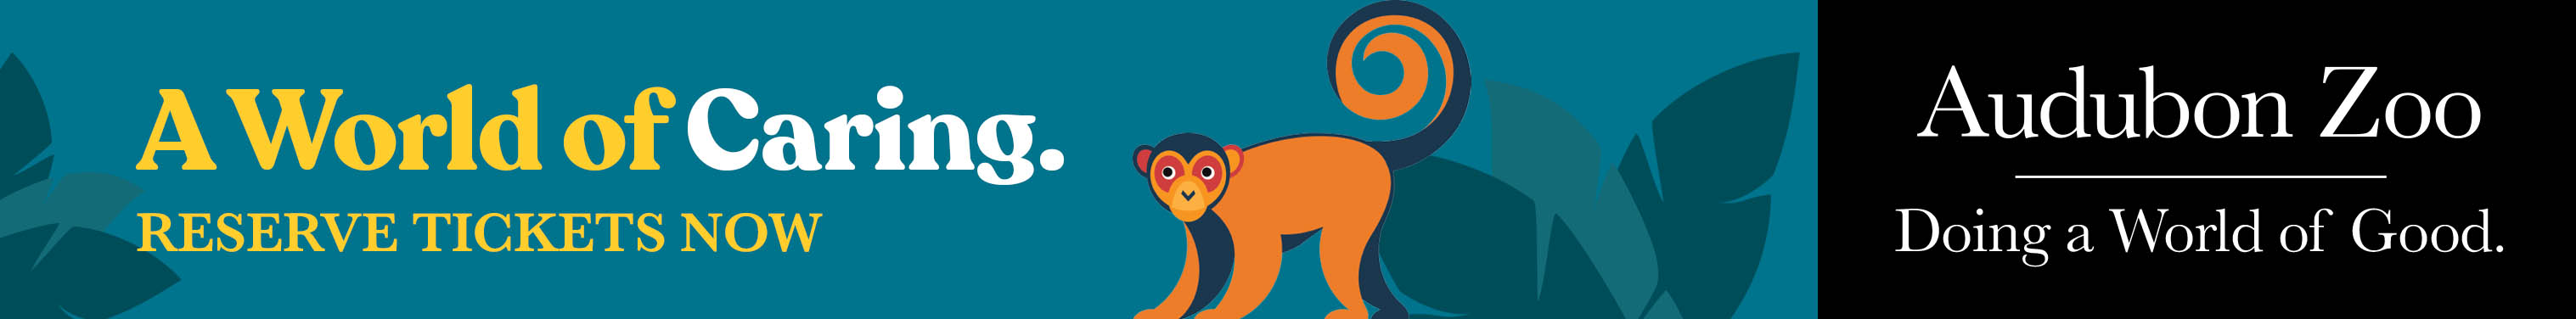 Digital-Ads-Zoo-Visit-728x90-spidermonkey